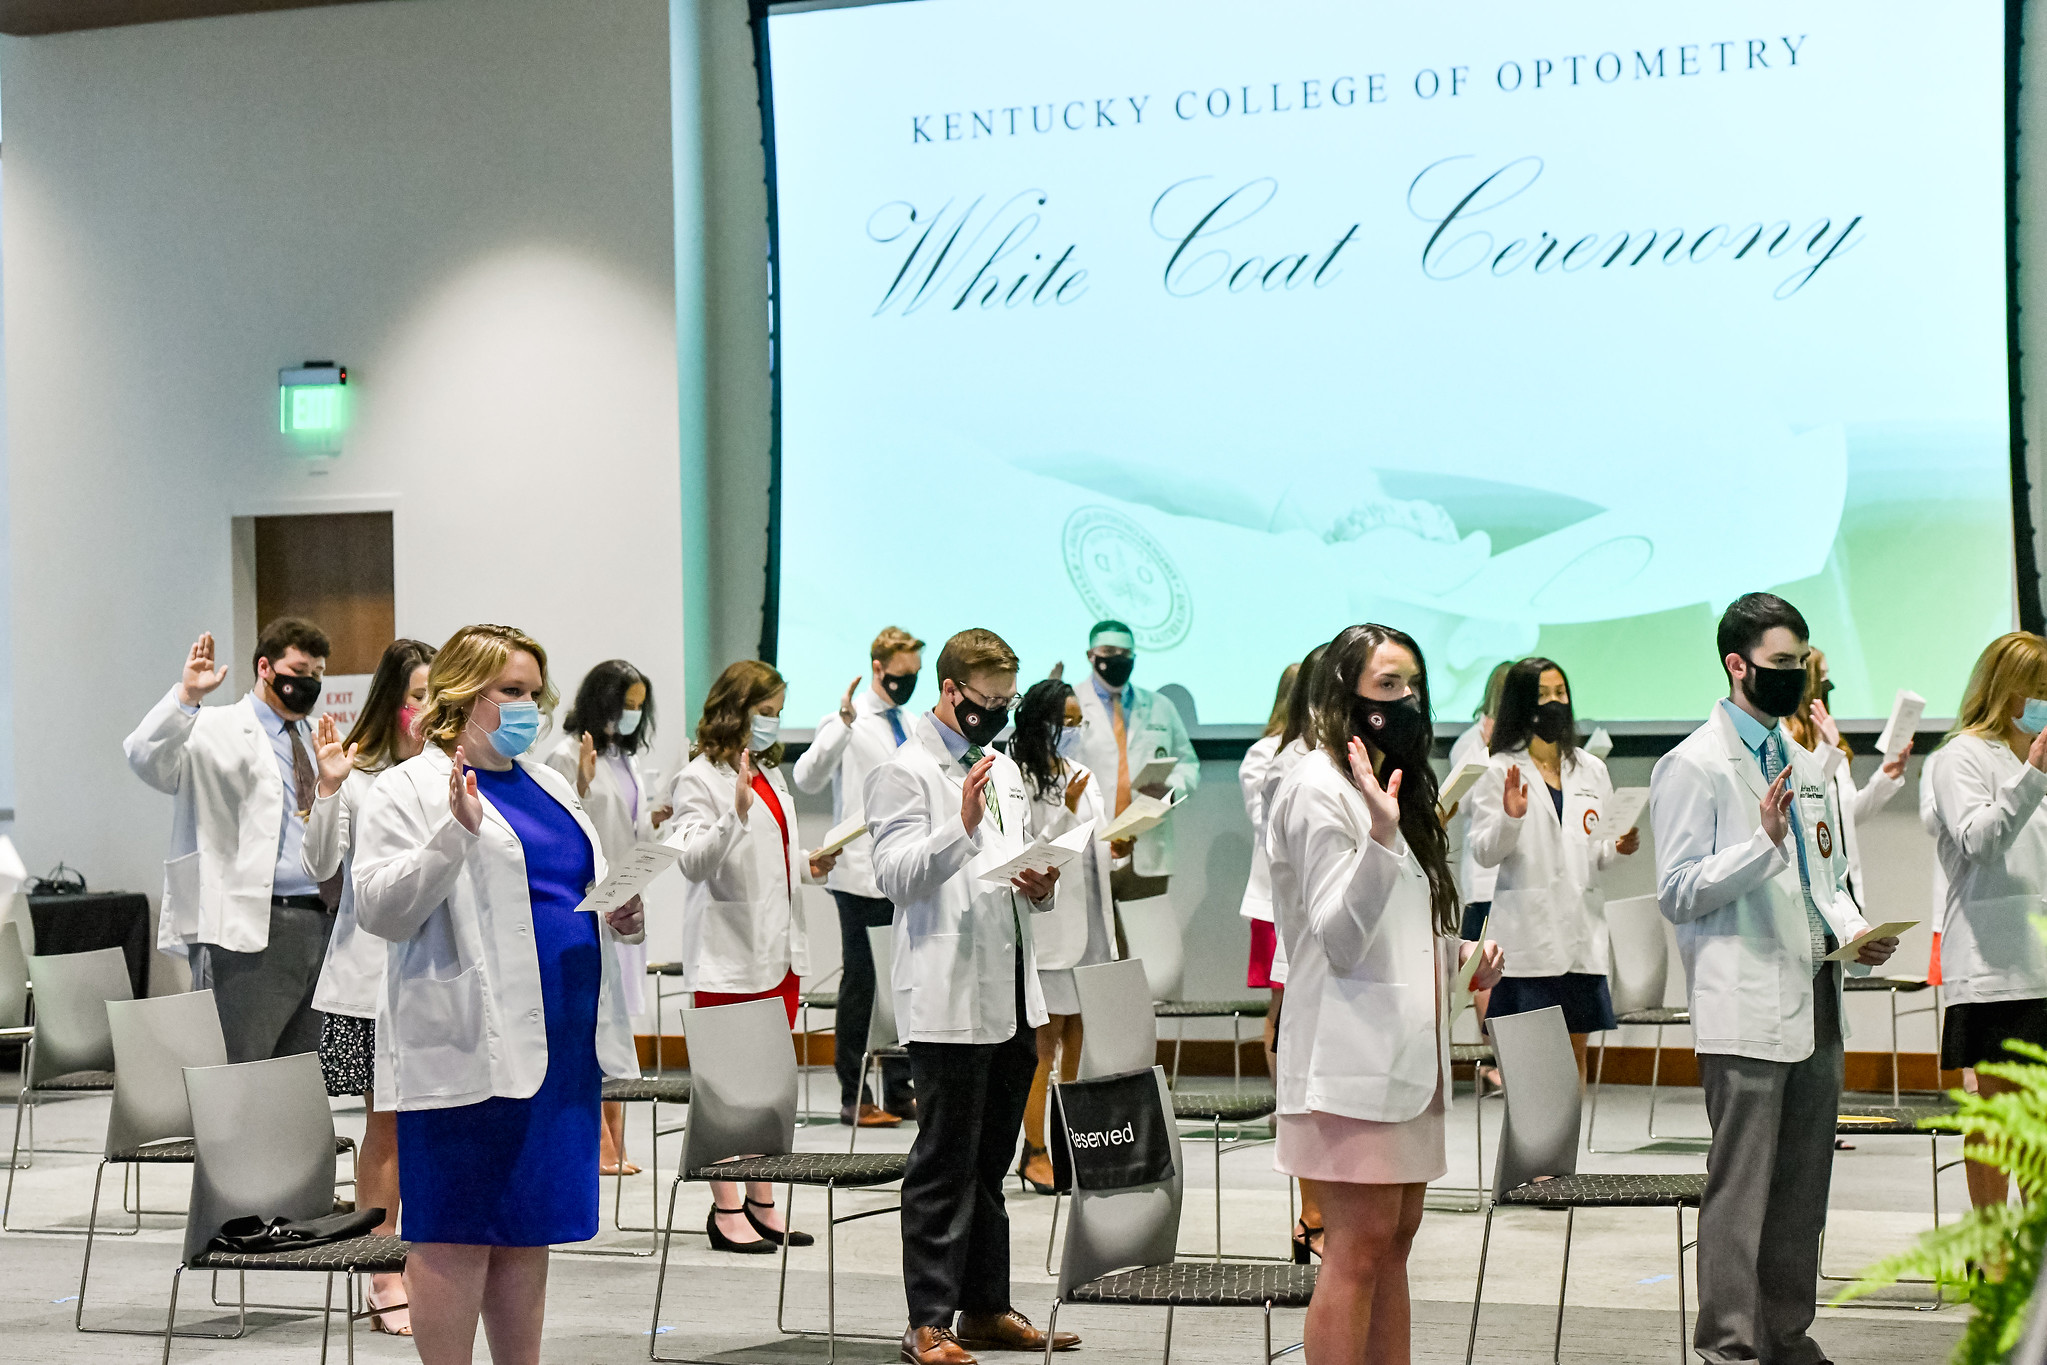 White-coat ceremony held for second-year optometry students